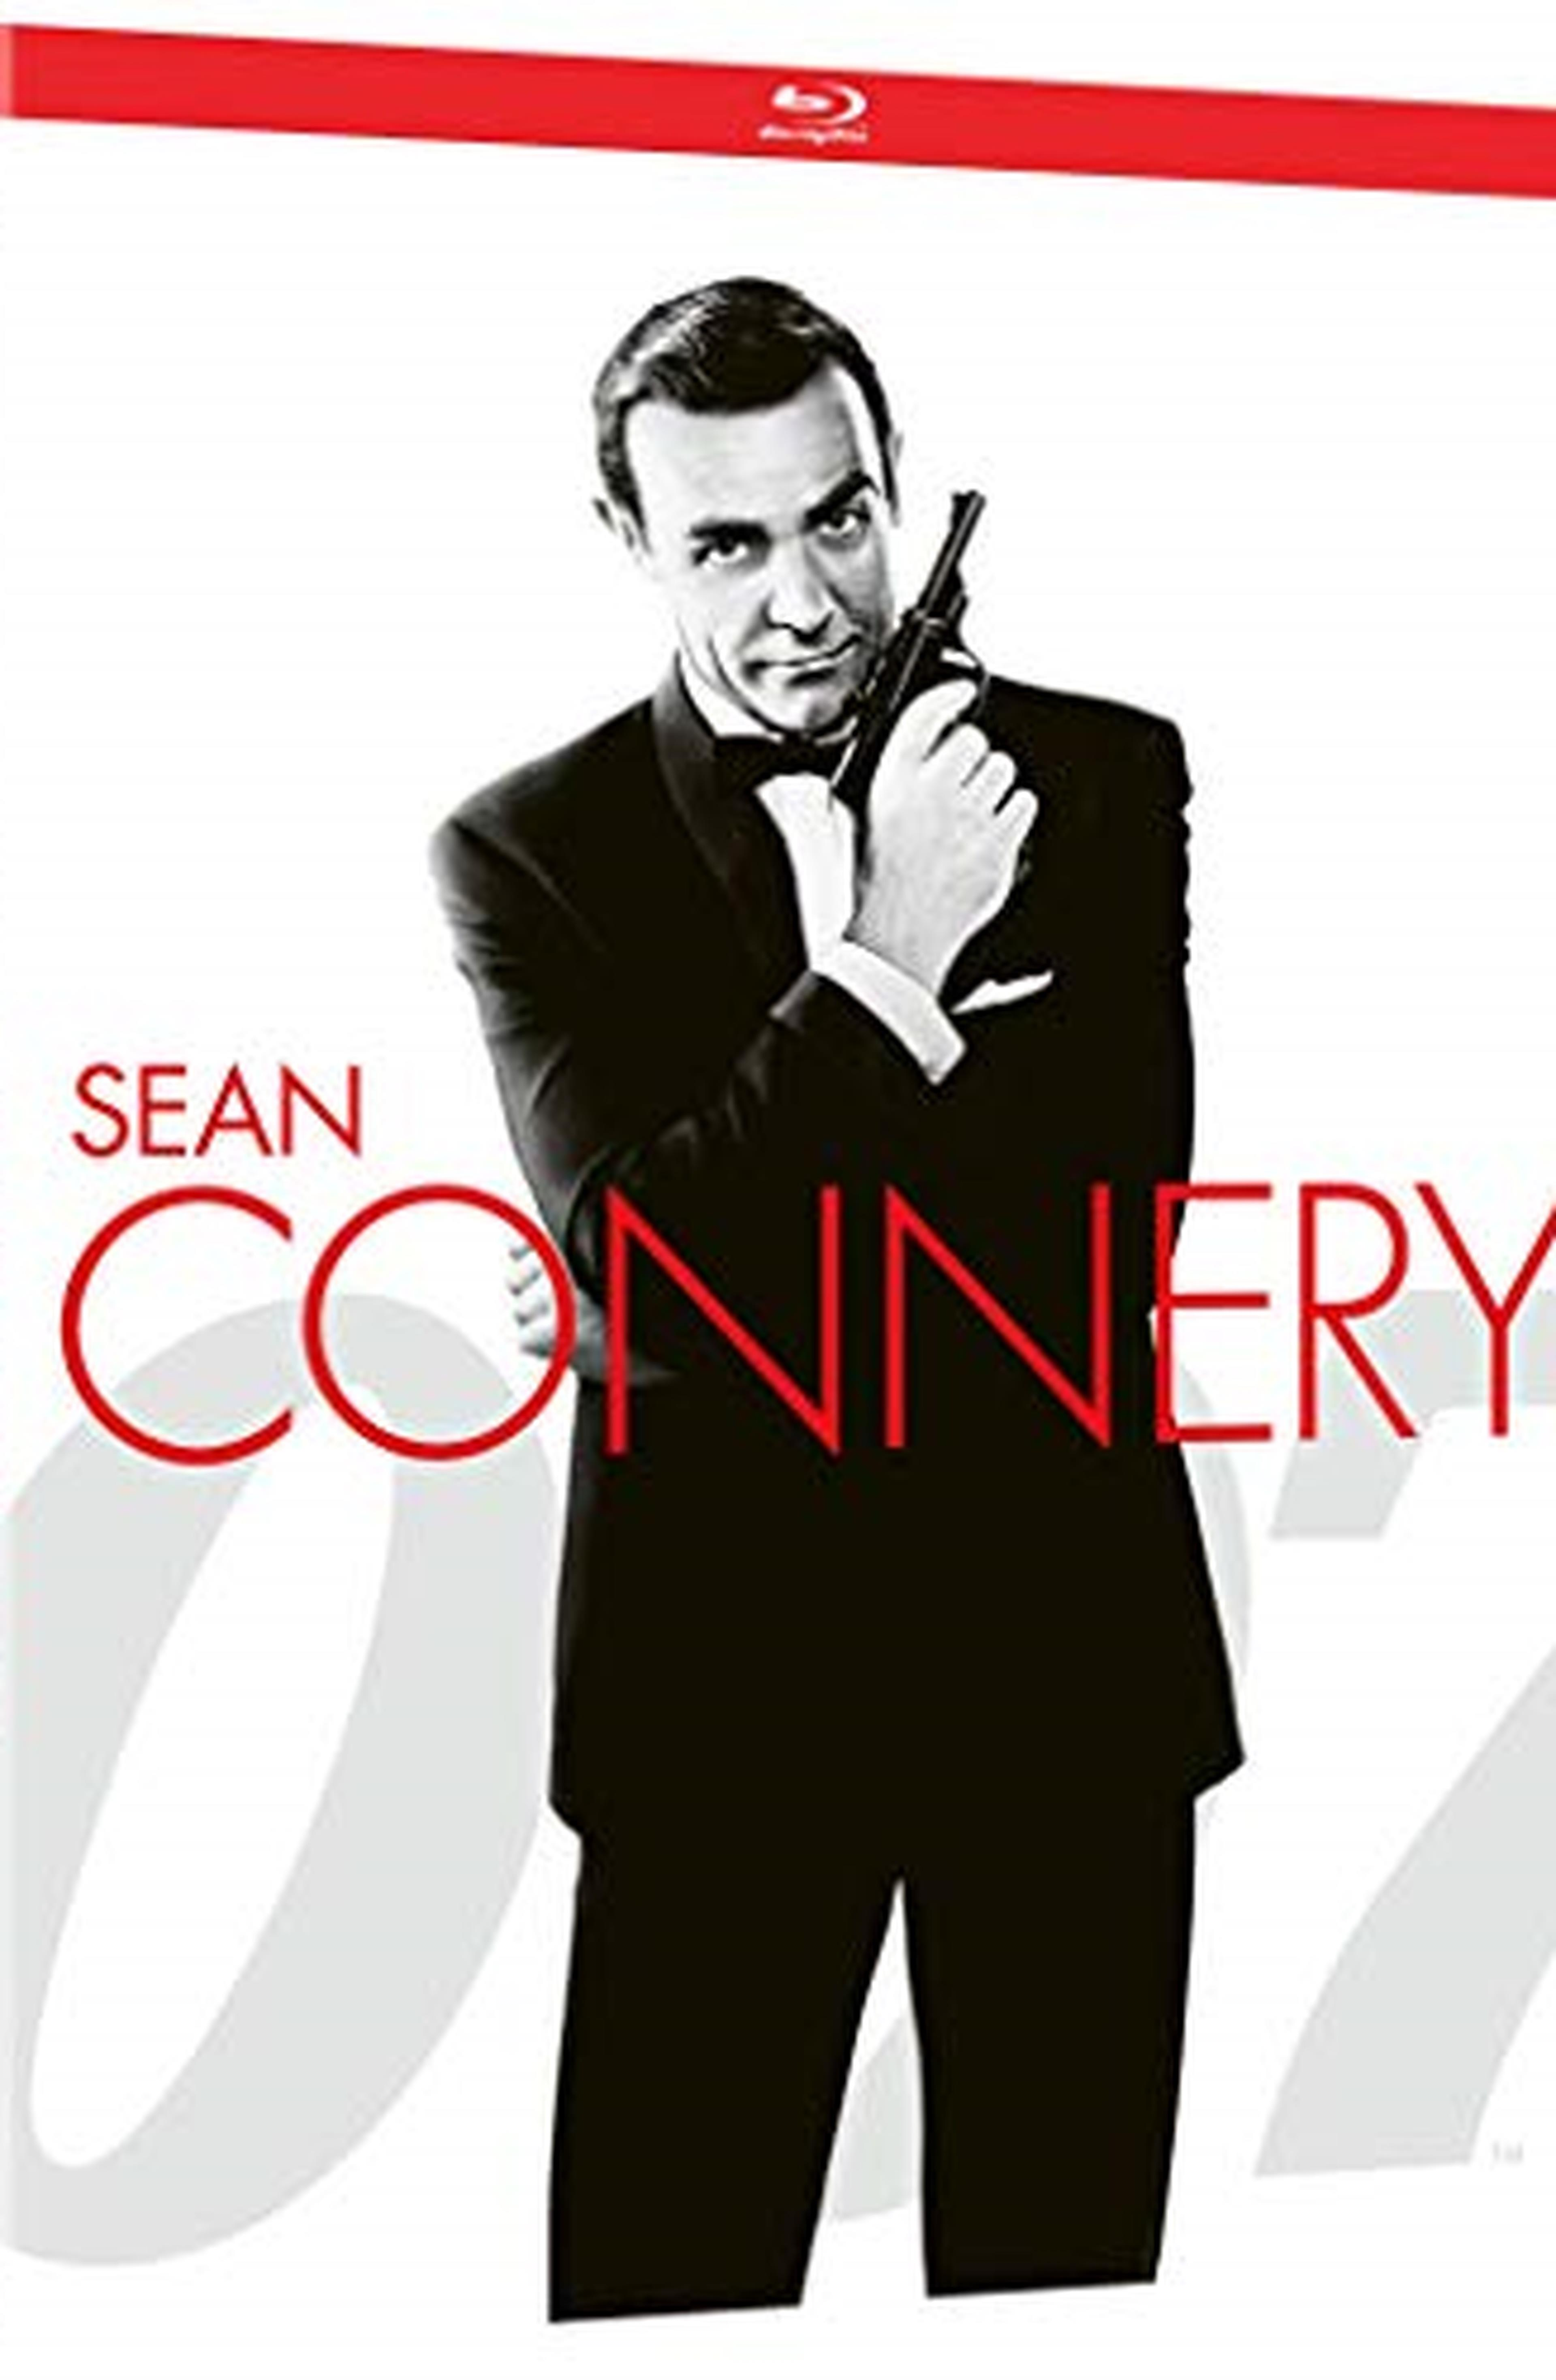 007: James Bond - Sean Connery Collection (6 Blu-ray)